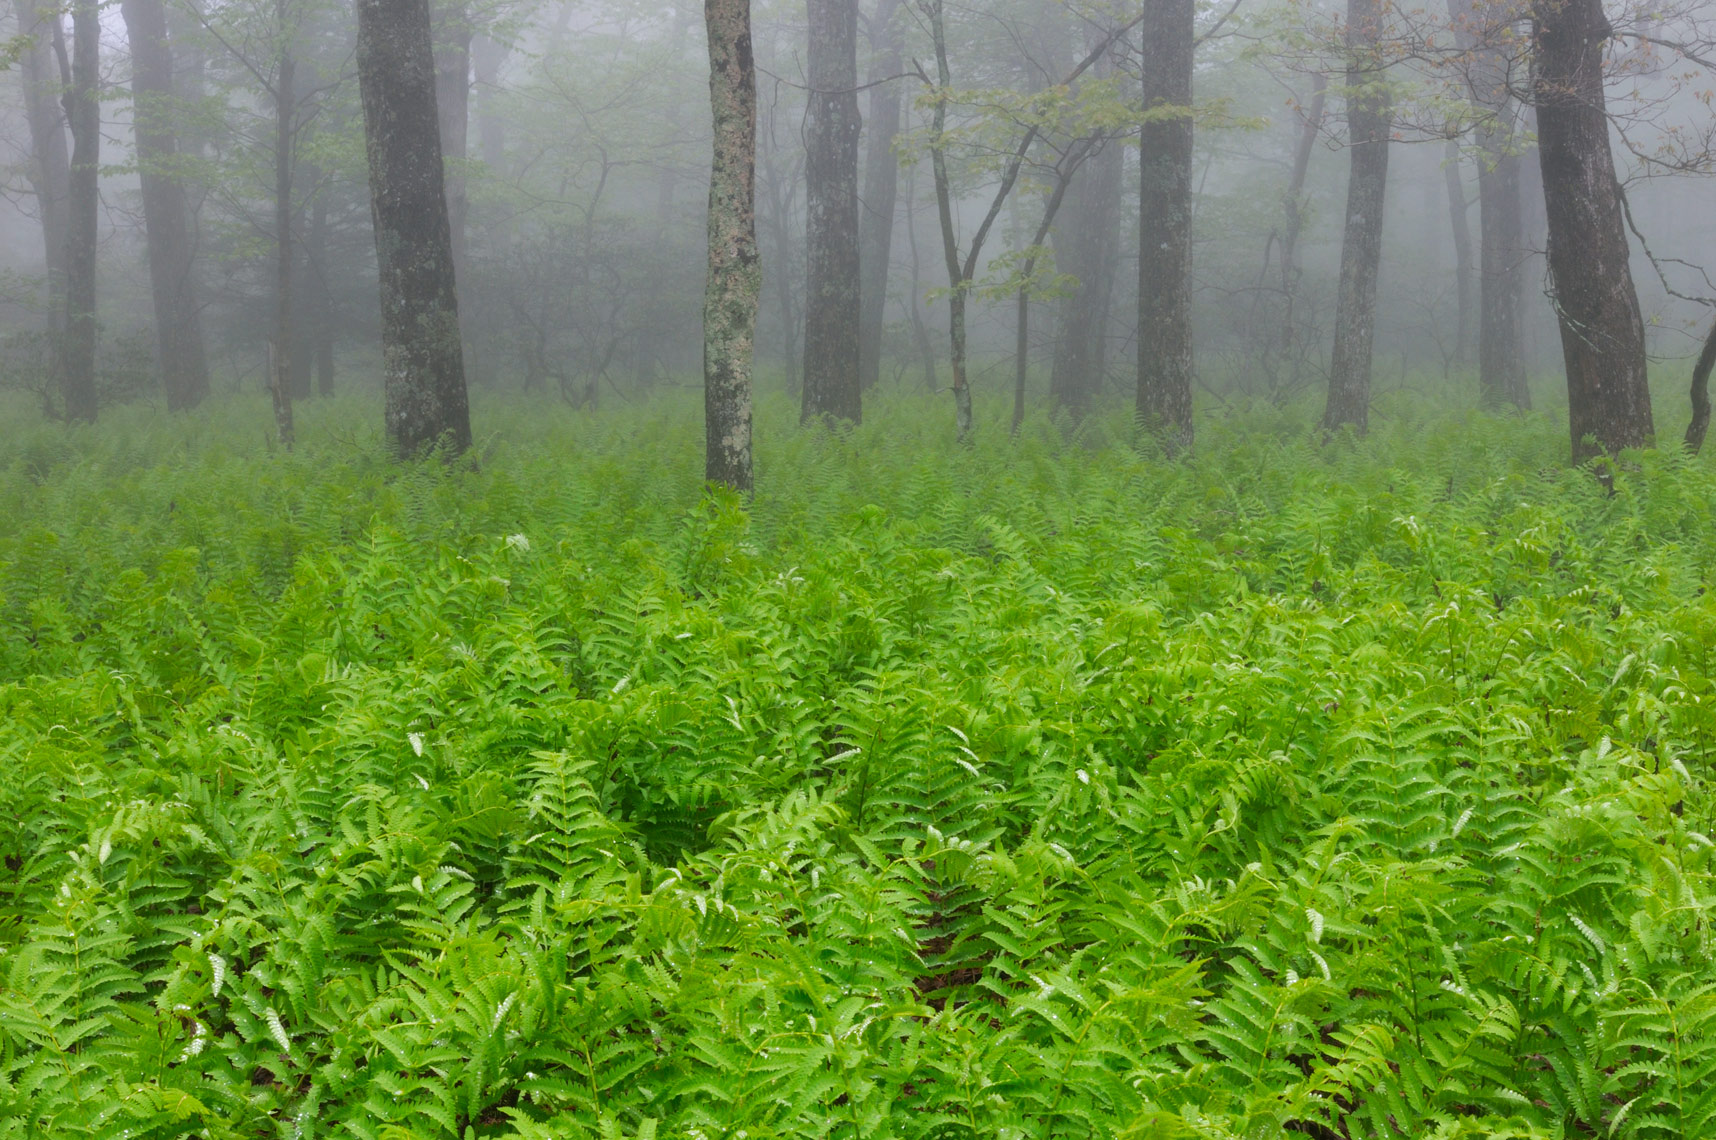 Ferns in the mist, Shenandoah National Park, Virginia